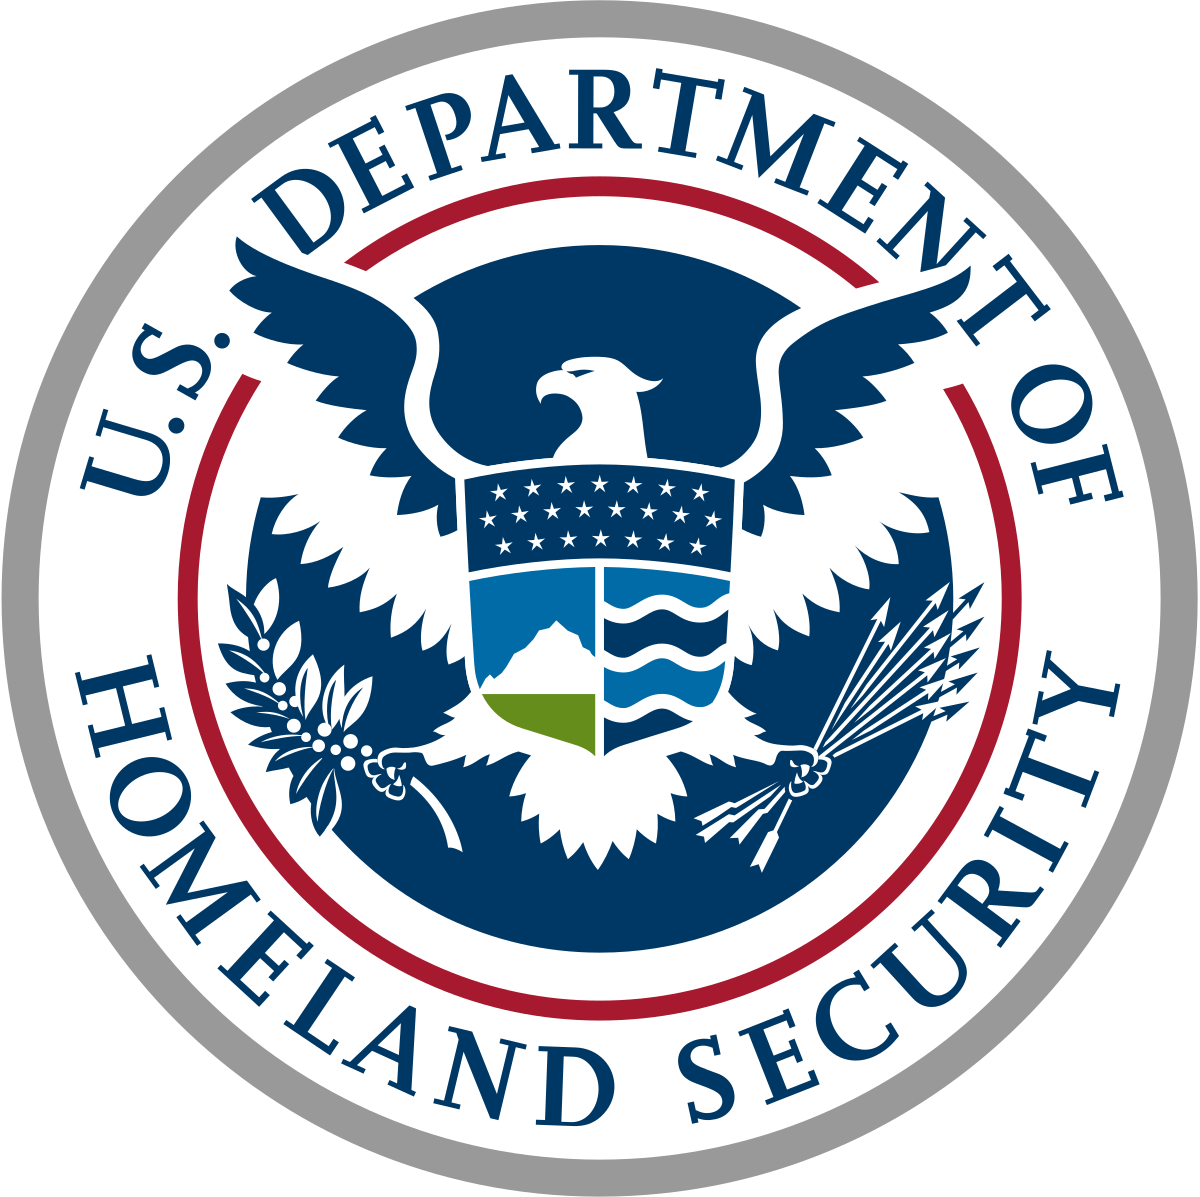 1200px-Seal_of_the_United_States_Department_of_Homeland_Security.svg.